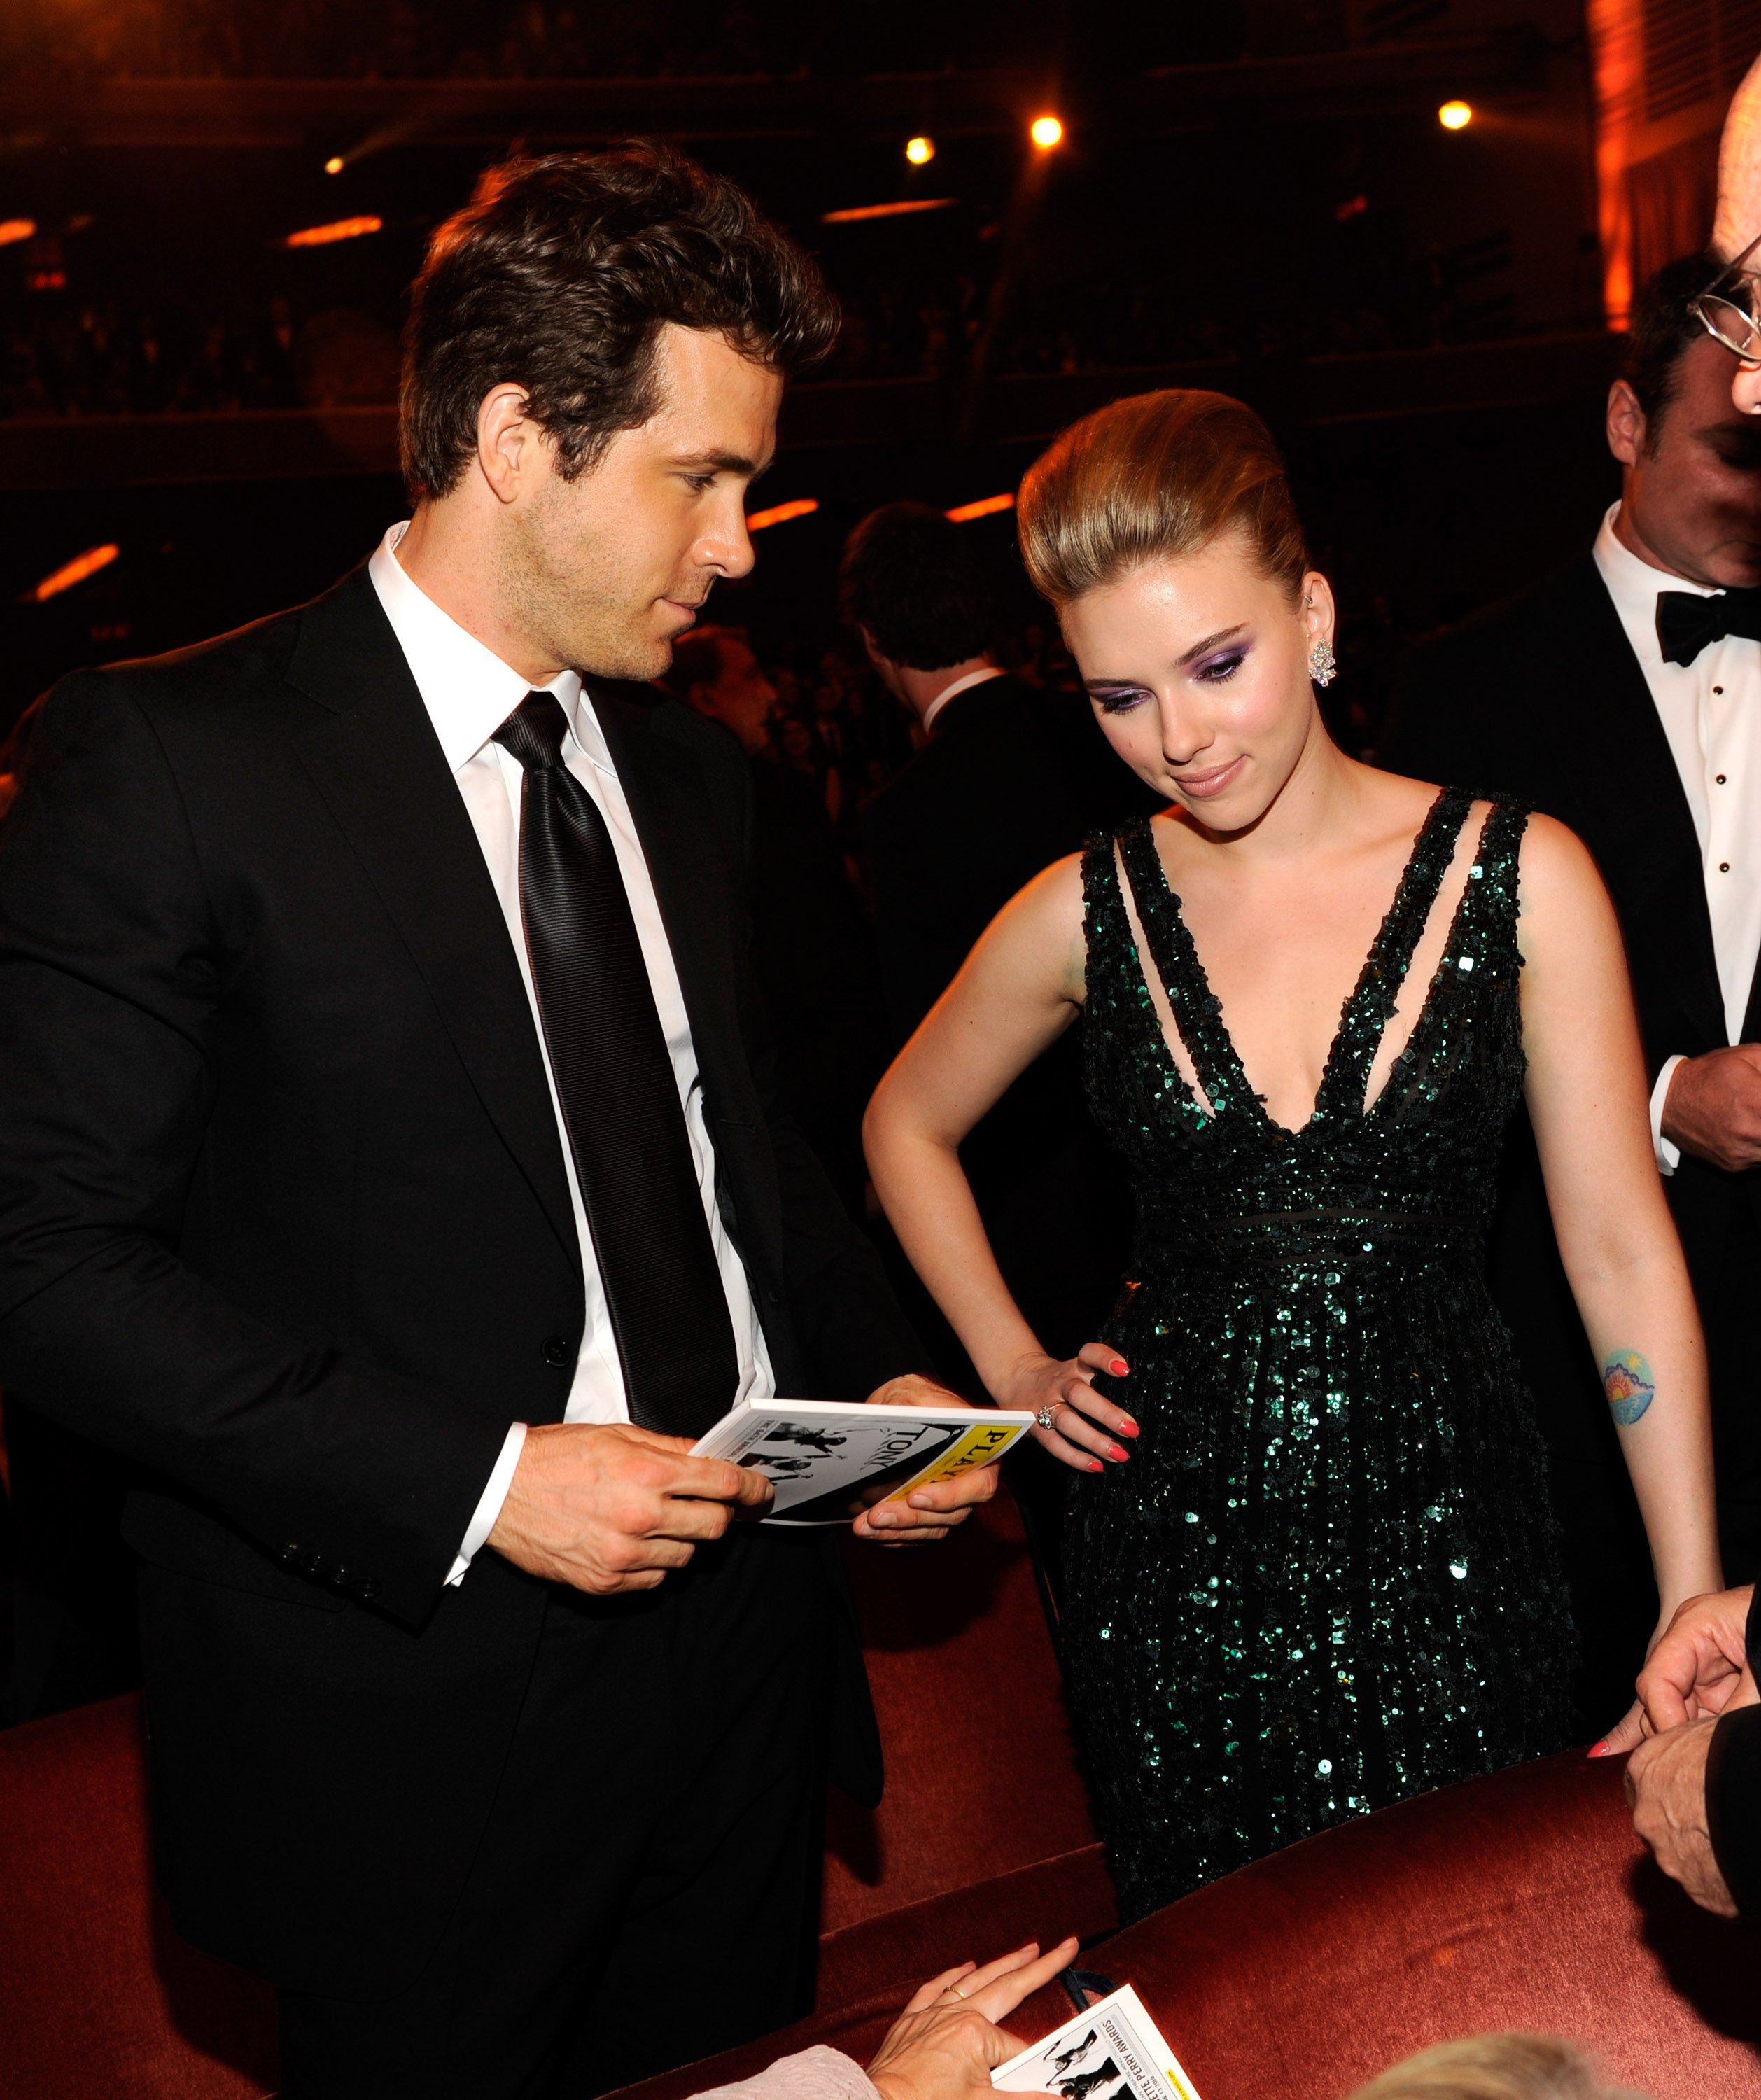 Image Credits: Getty Images | Blake Lively's current hubby dated the Black Widow star Scarlett Johansson